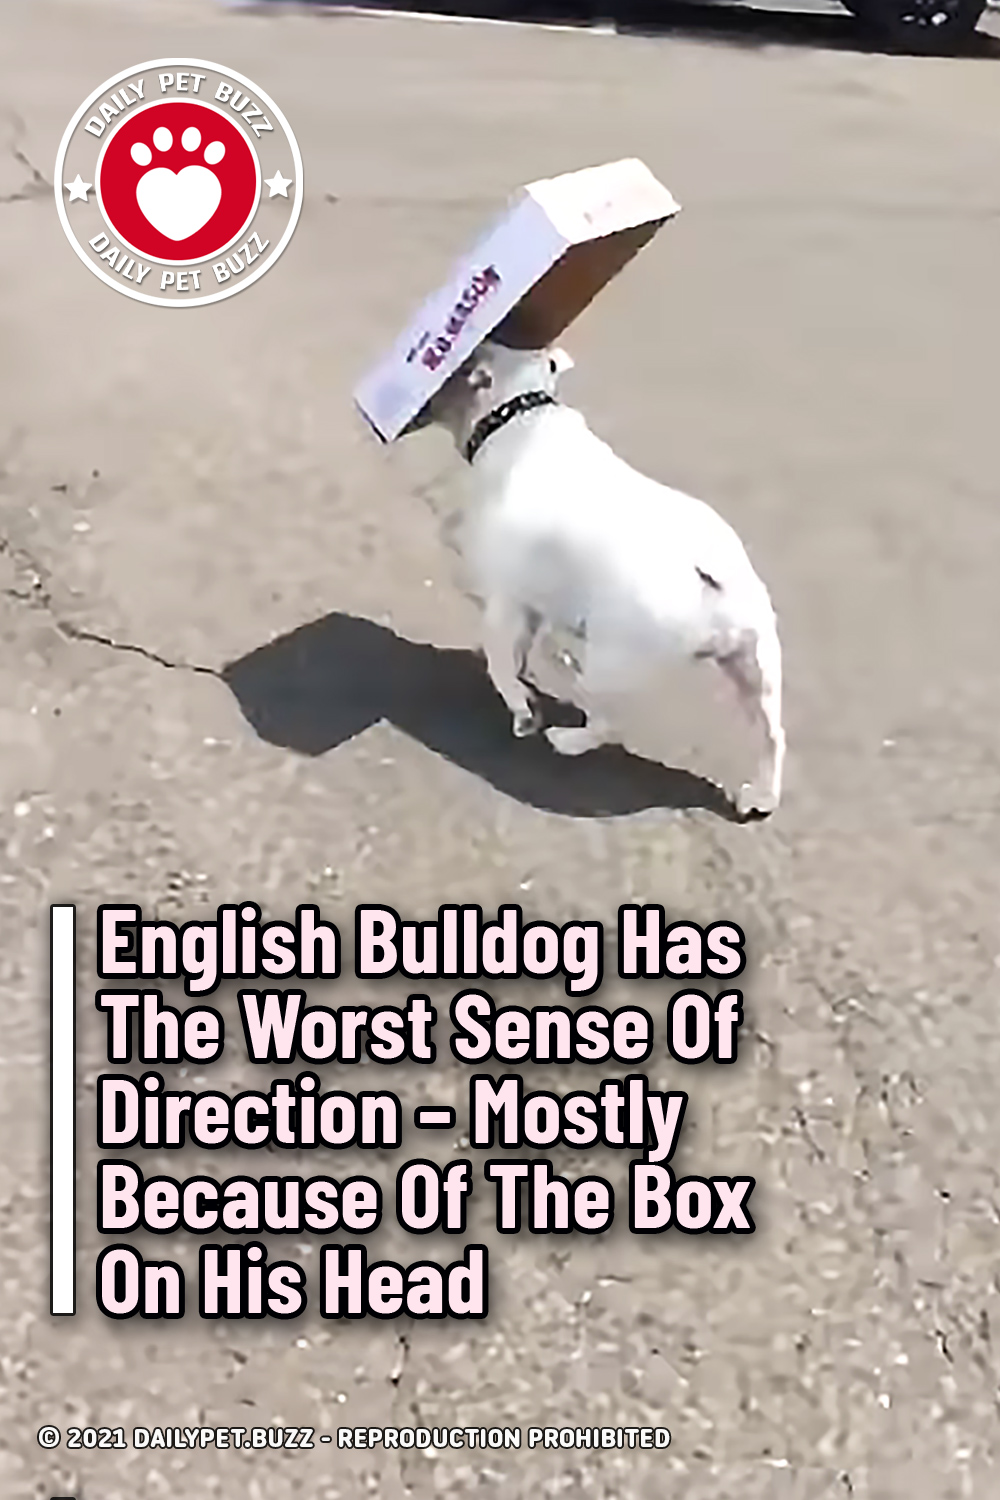 English Bulldog Has The Worst Sense Of Direction – Mostly Because Of The Box On His Head